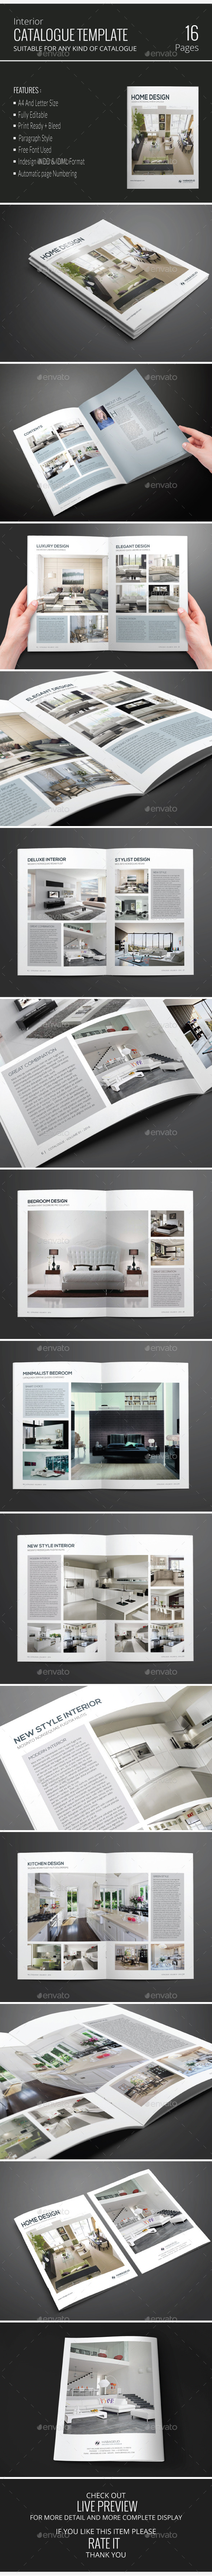 GraphicRiver Catalog Template Vol 03 8954550